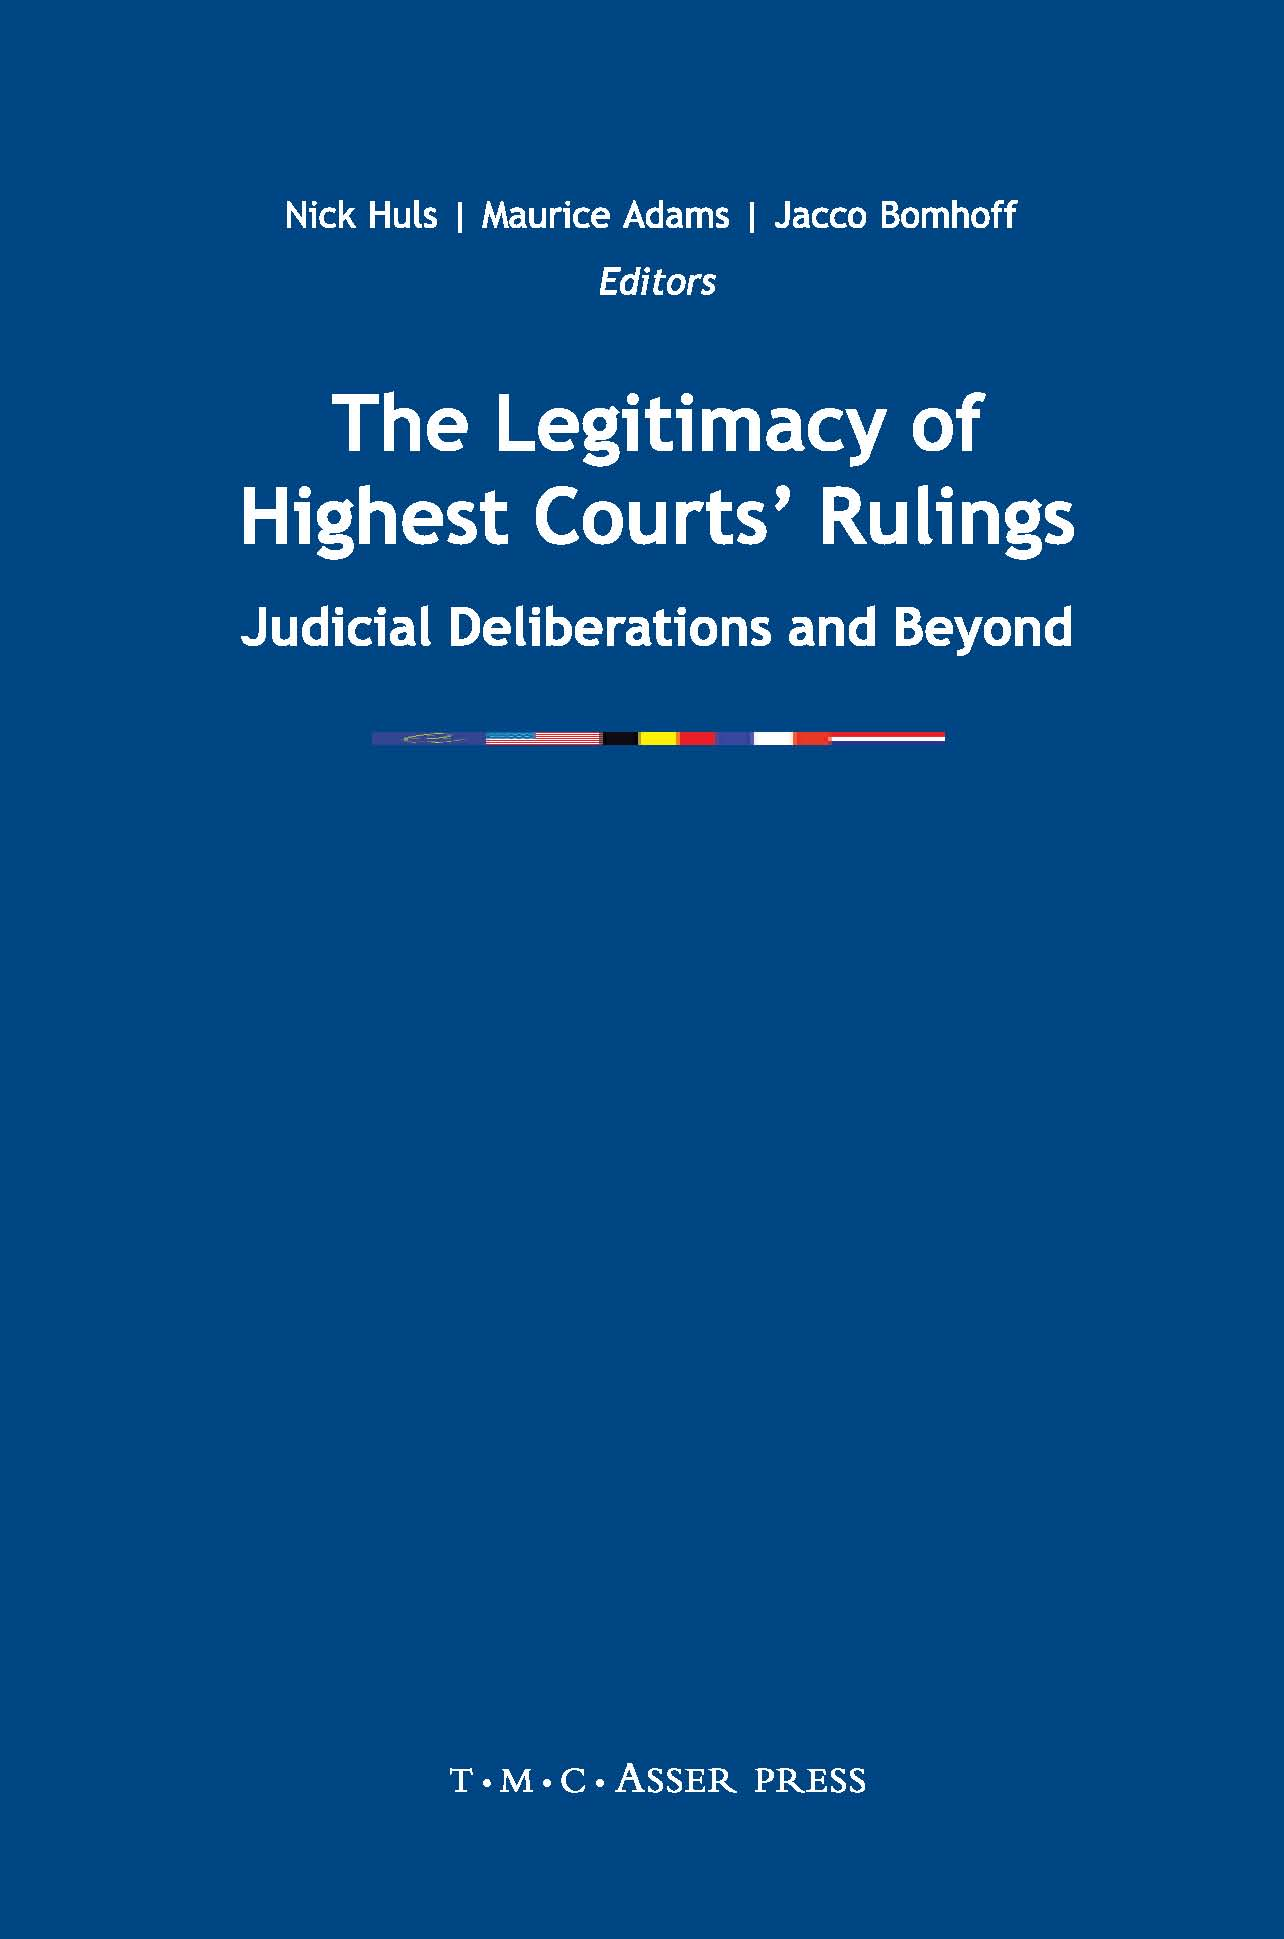 The Legitimacy of Highest Courts' Rulings - Judicial Deliberations and Beyond